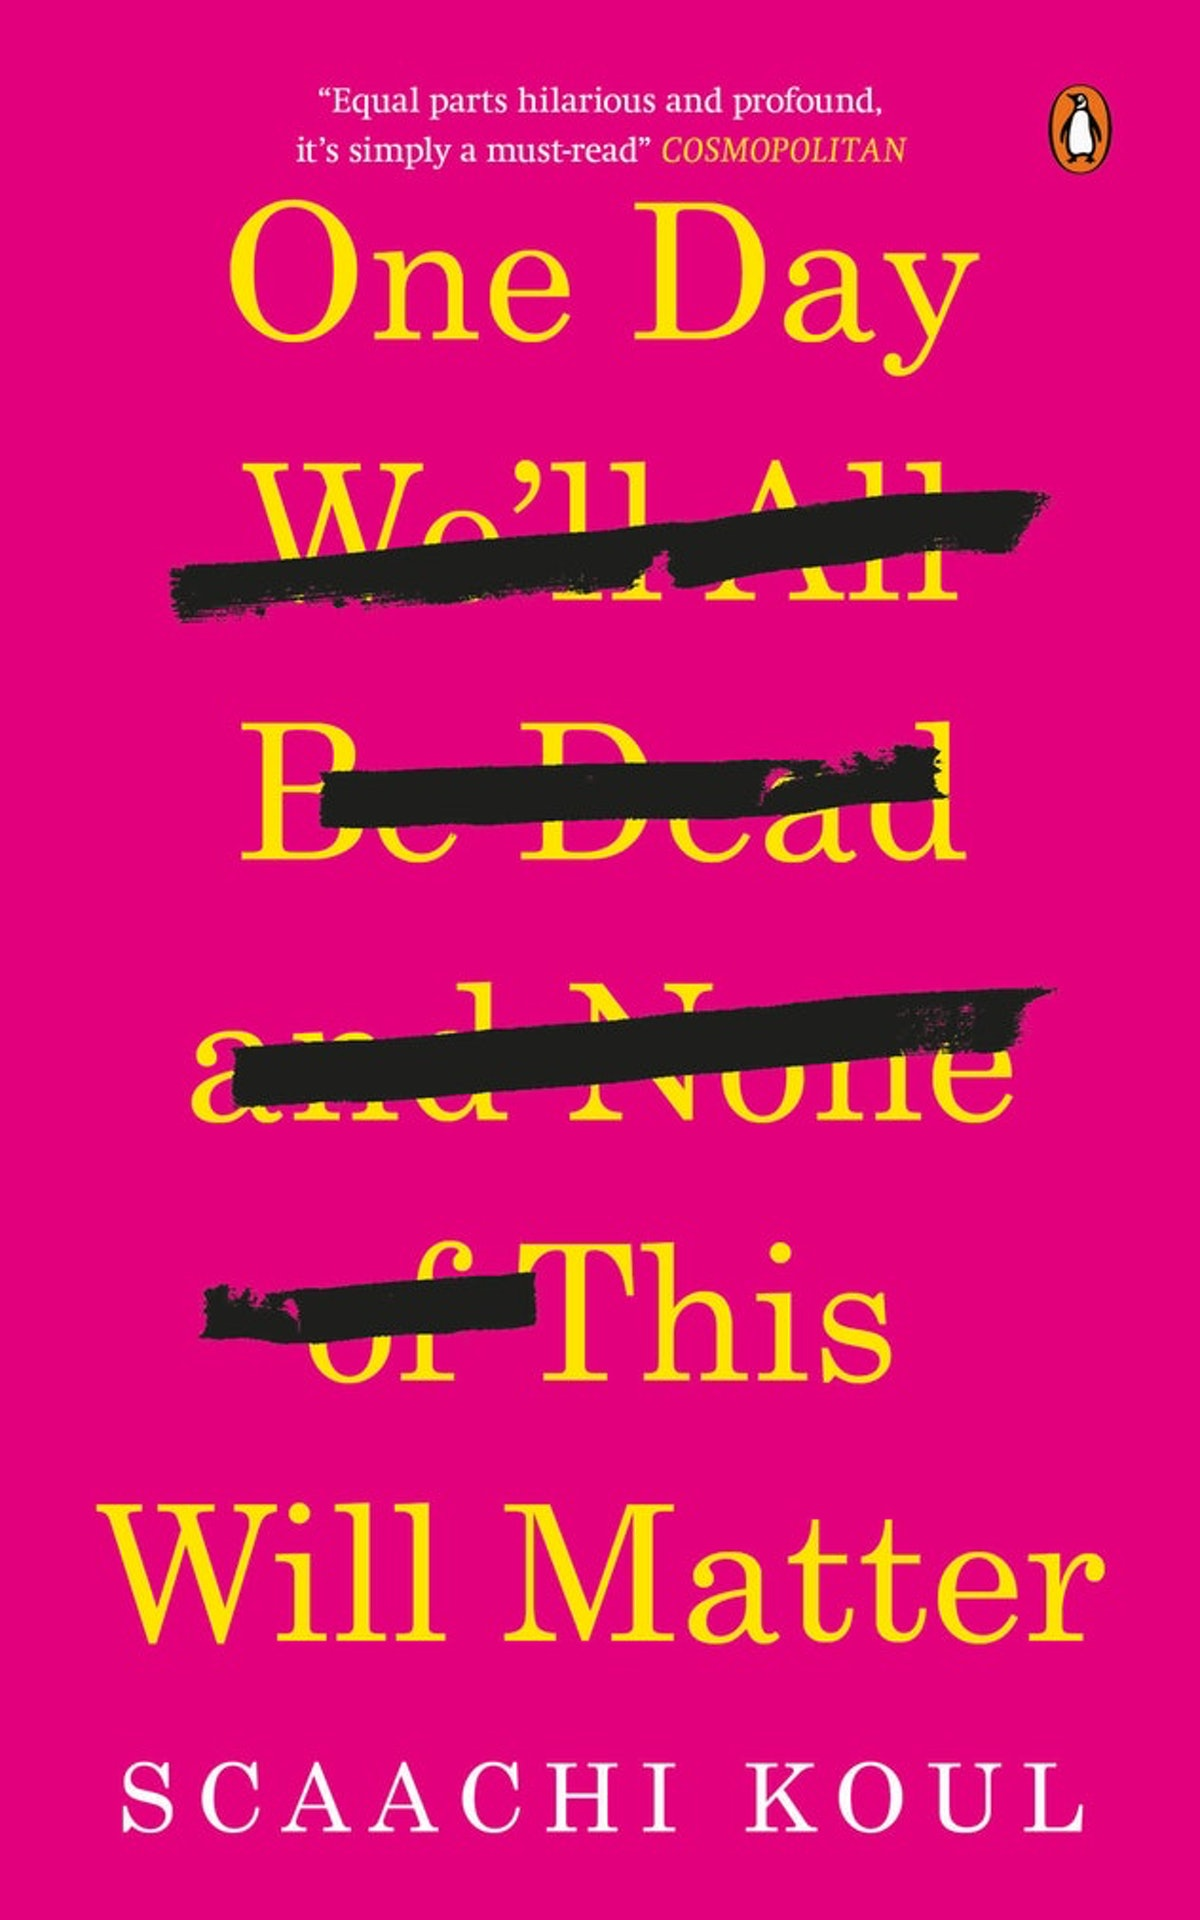 'One Day We'll All Be Dead and None Of This Will Matter' by Scaachi Koul